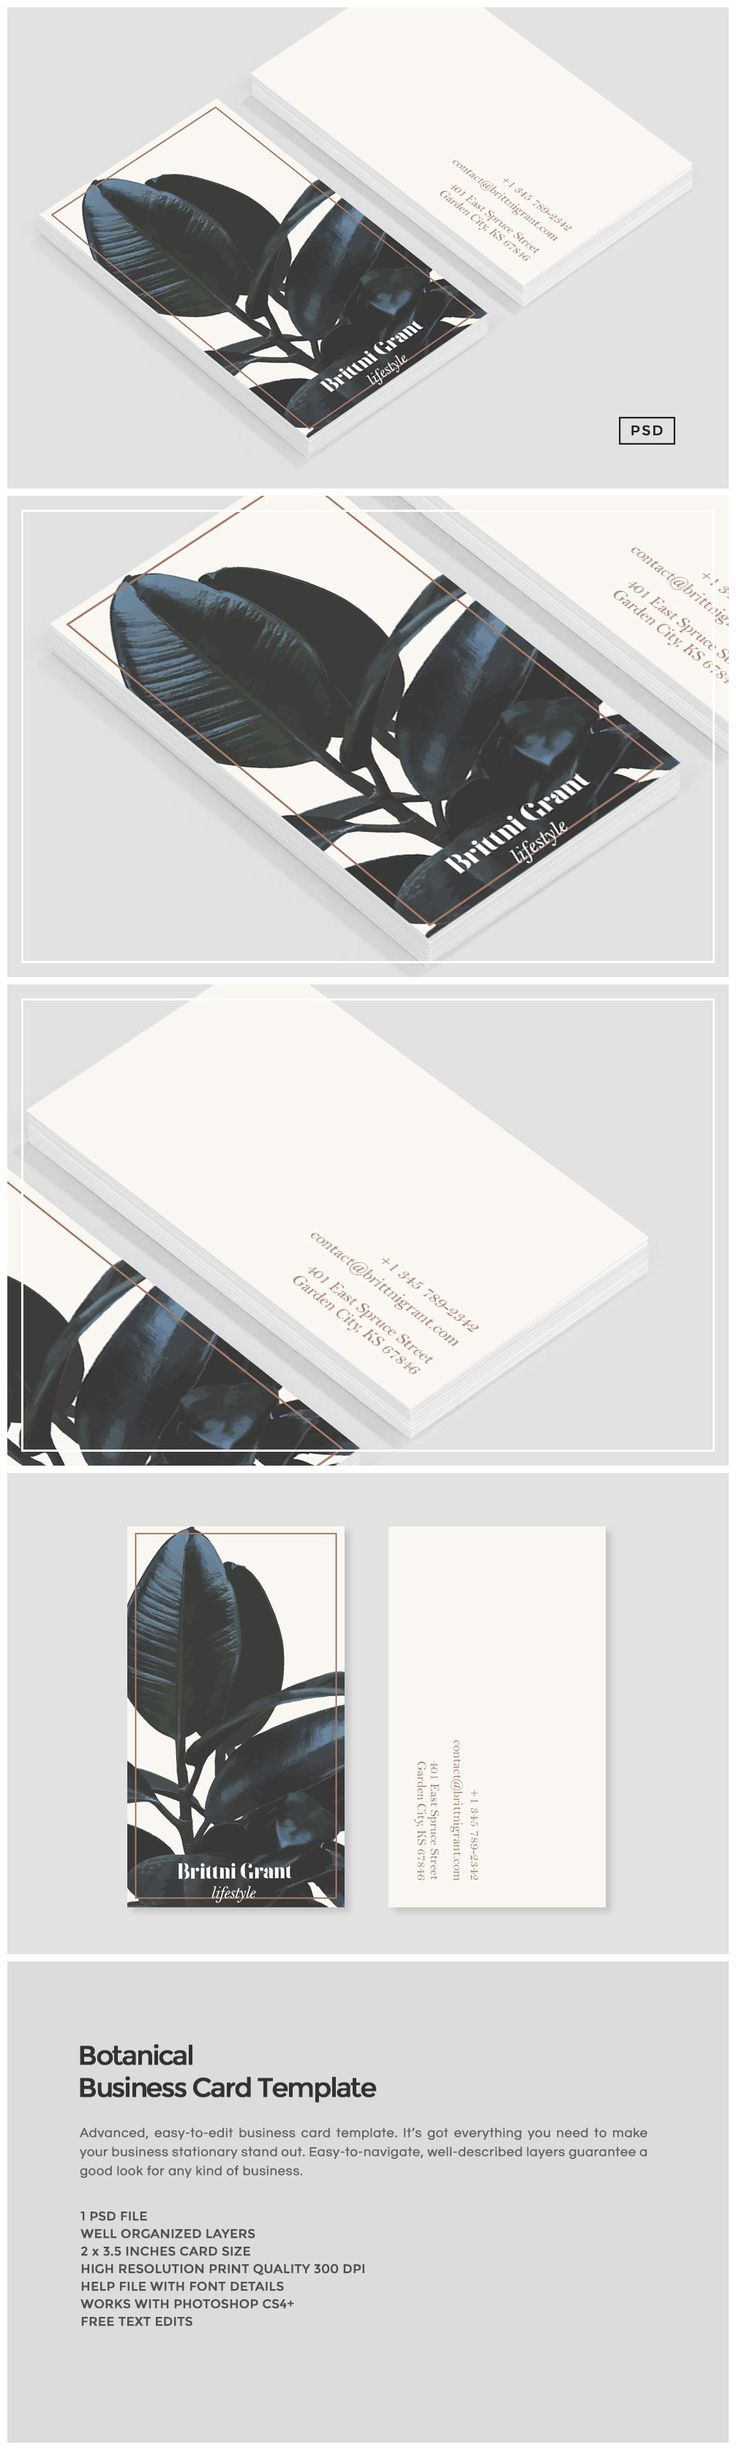 Botanical Business card Template: suitable for a variety of fields like cosmetics, jewelry, beauty, fancy restaurants, luxury and fashion industry, interior design, architecture, graphic design & personal branding. You will probably discover even more areas where you can these designs effortlessly. The 100% editable design is versatile and the possibilities are endless.